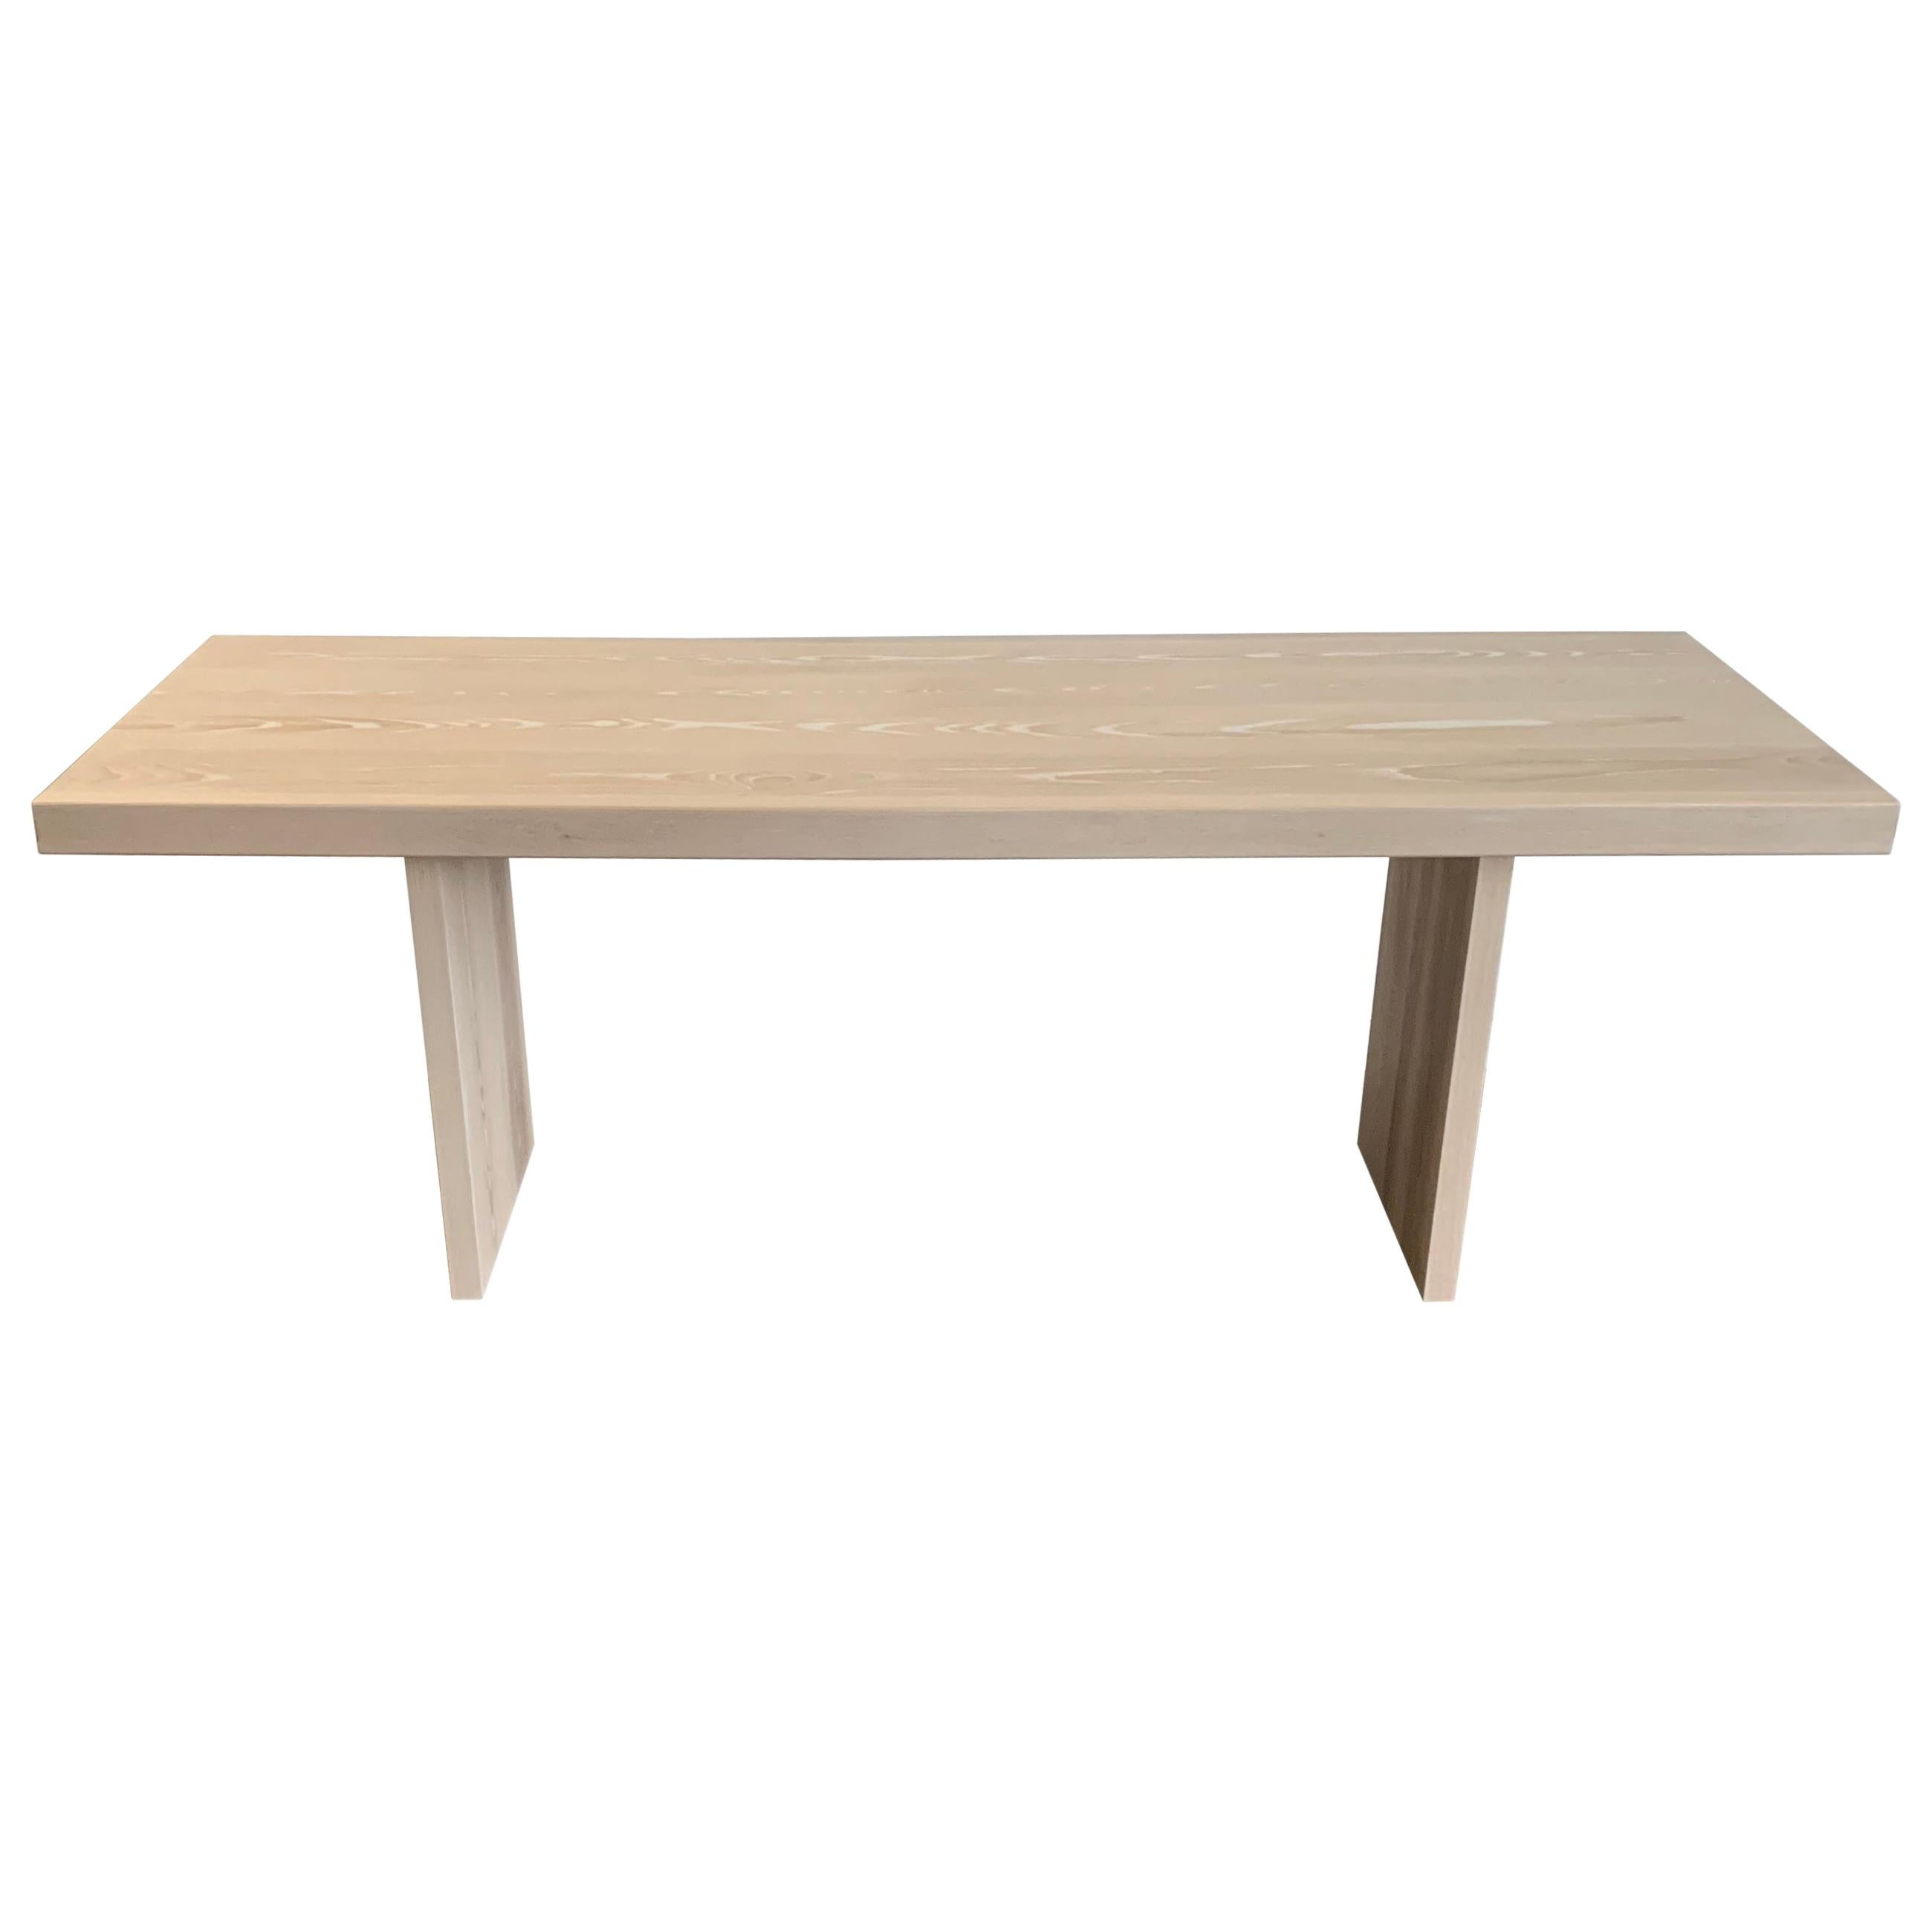 Bleached Ash Table